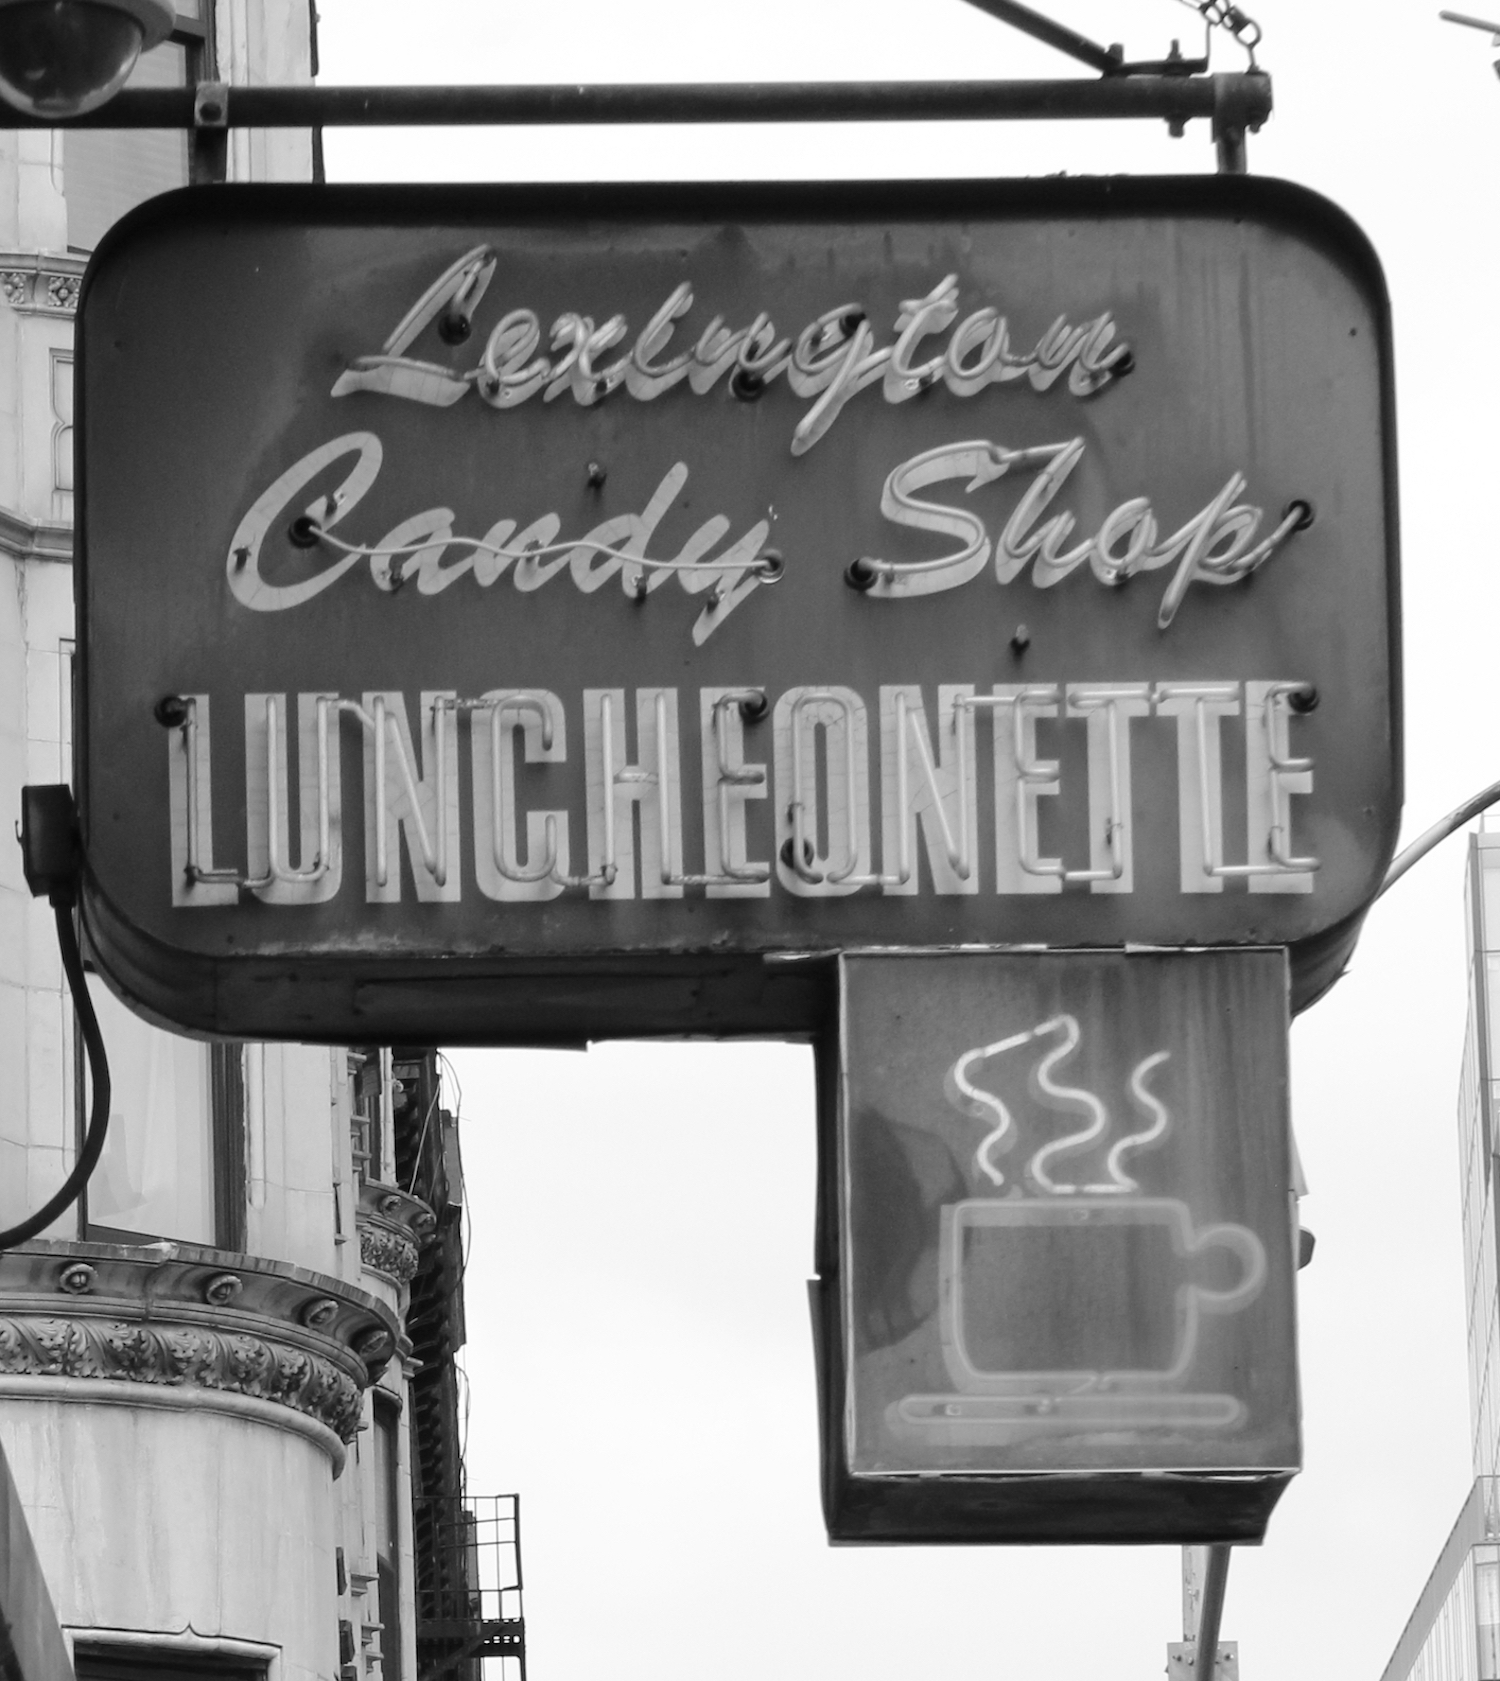 Syed's neighbor to the north, Lexington Candy Shop, a diner, has been around since 1925.